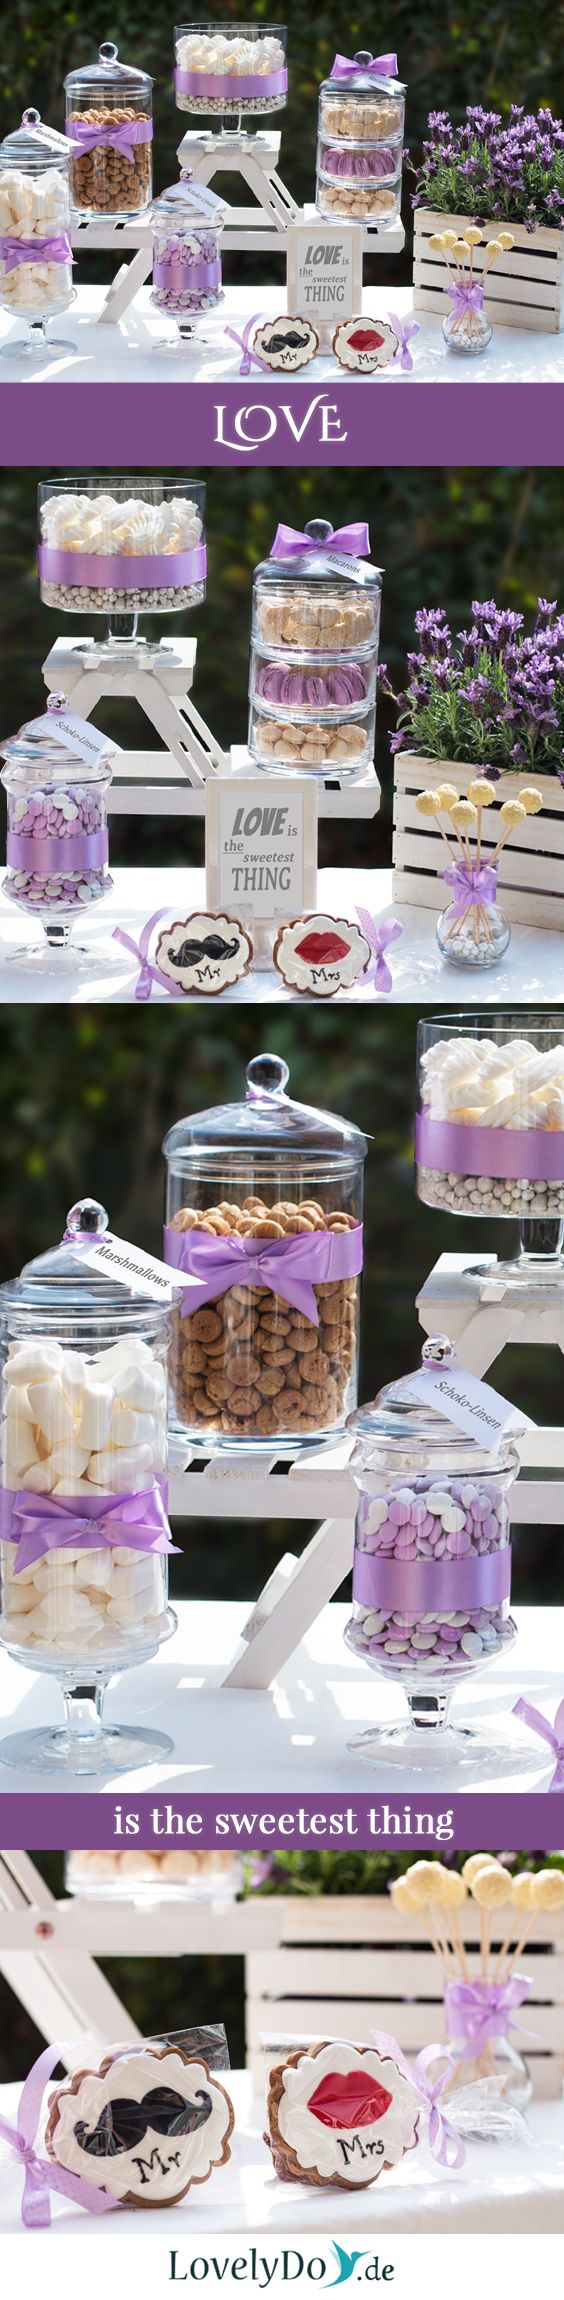 best Ayled images on Pinterest  Wedding ideas Dessert tables